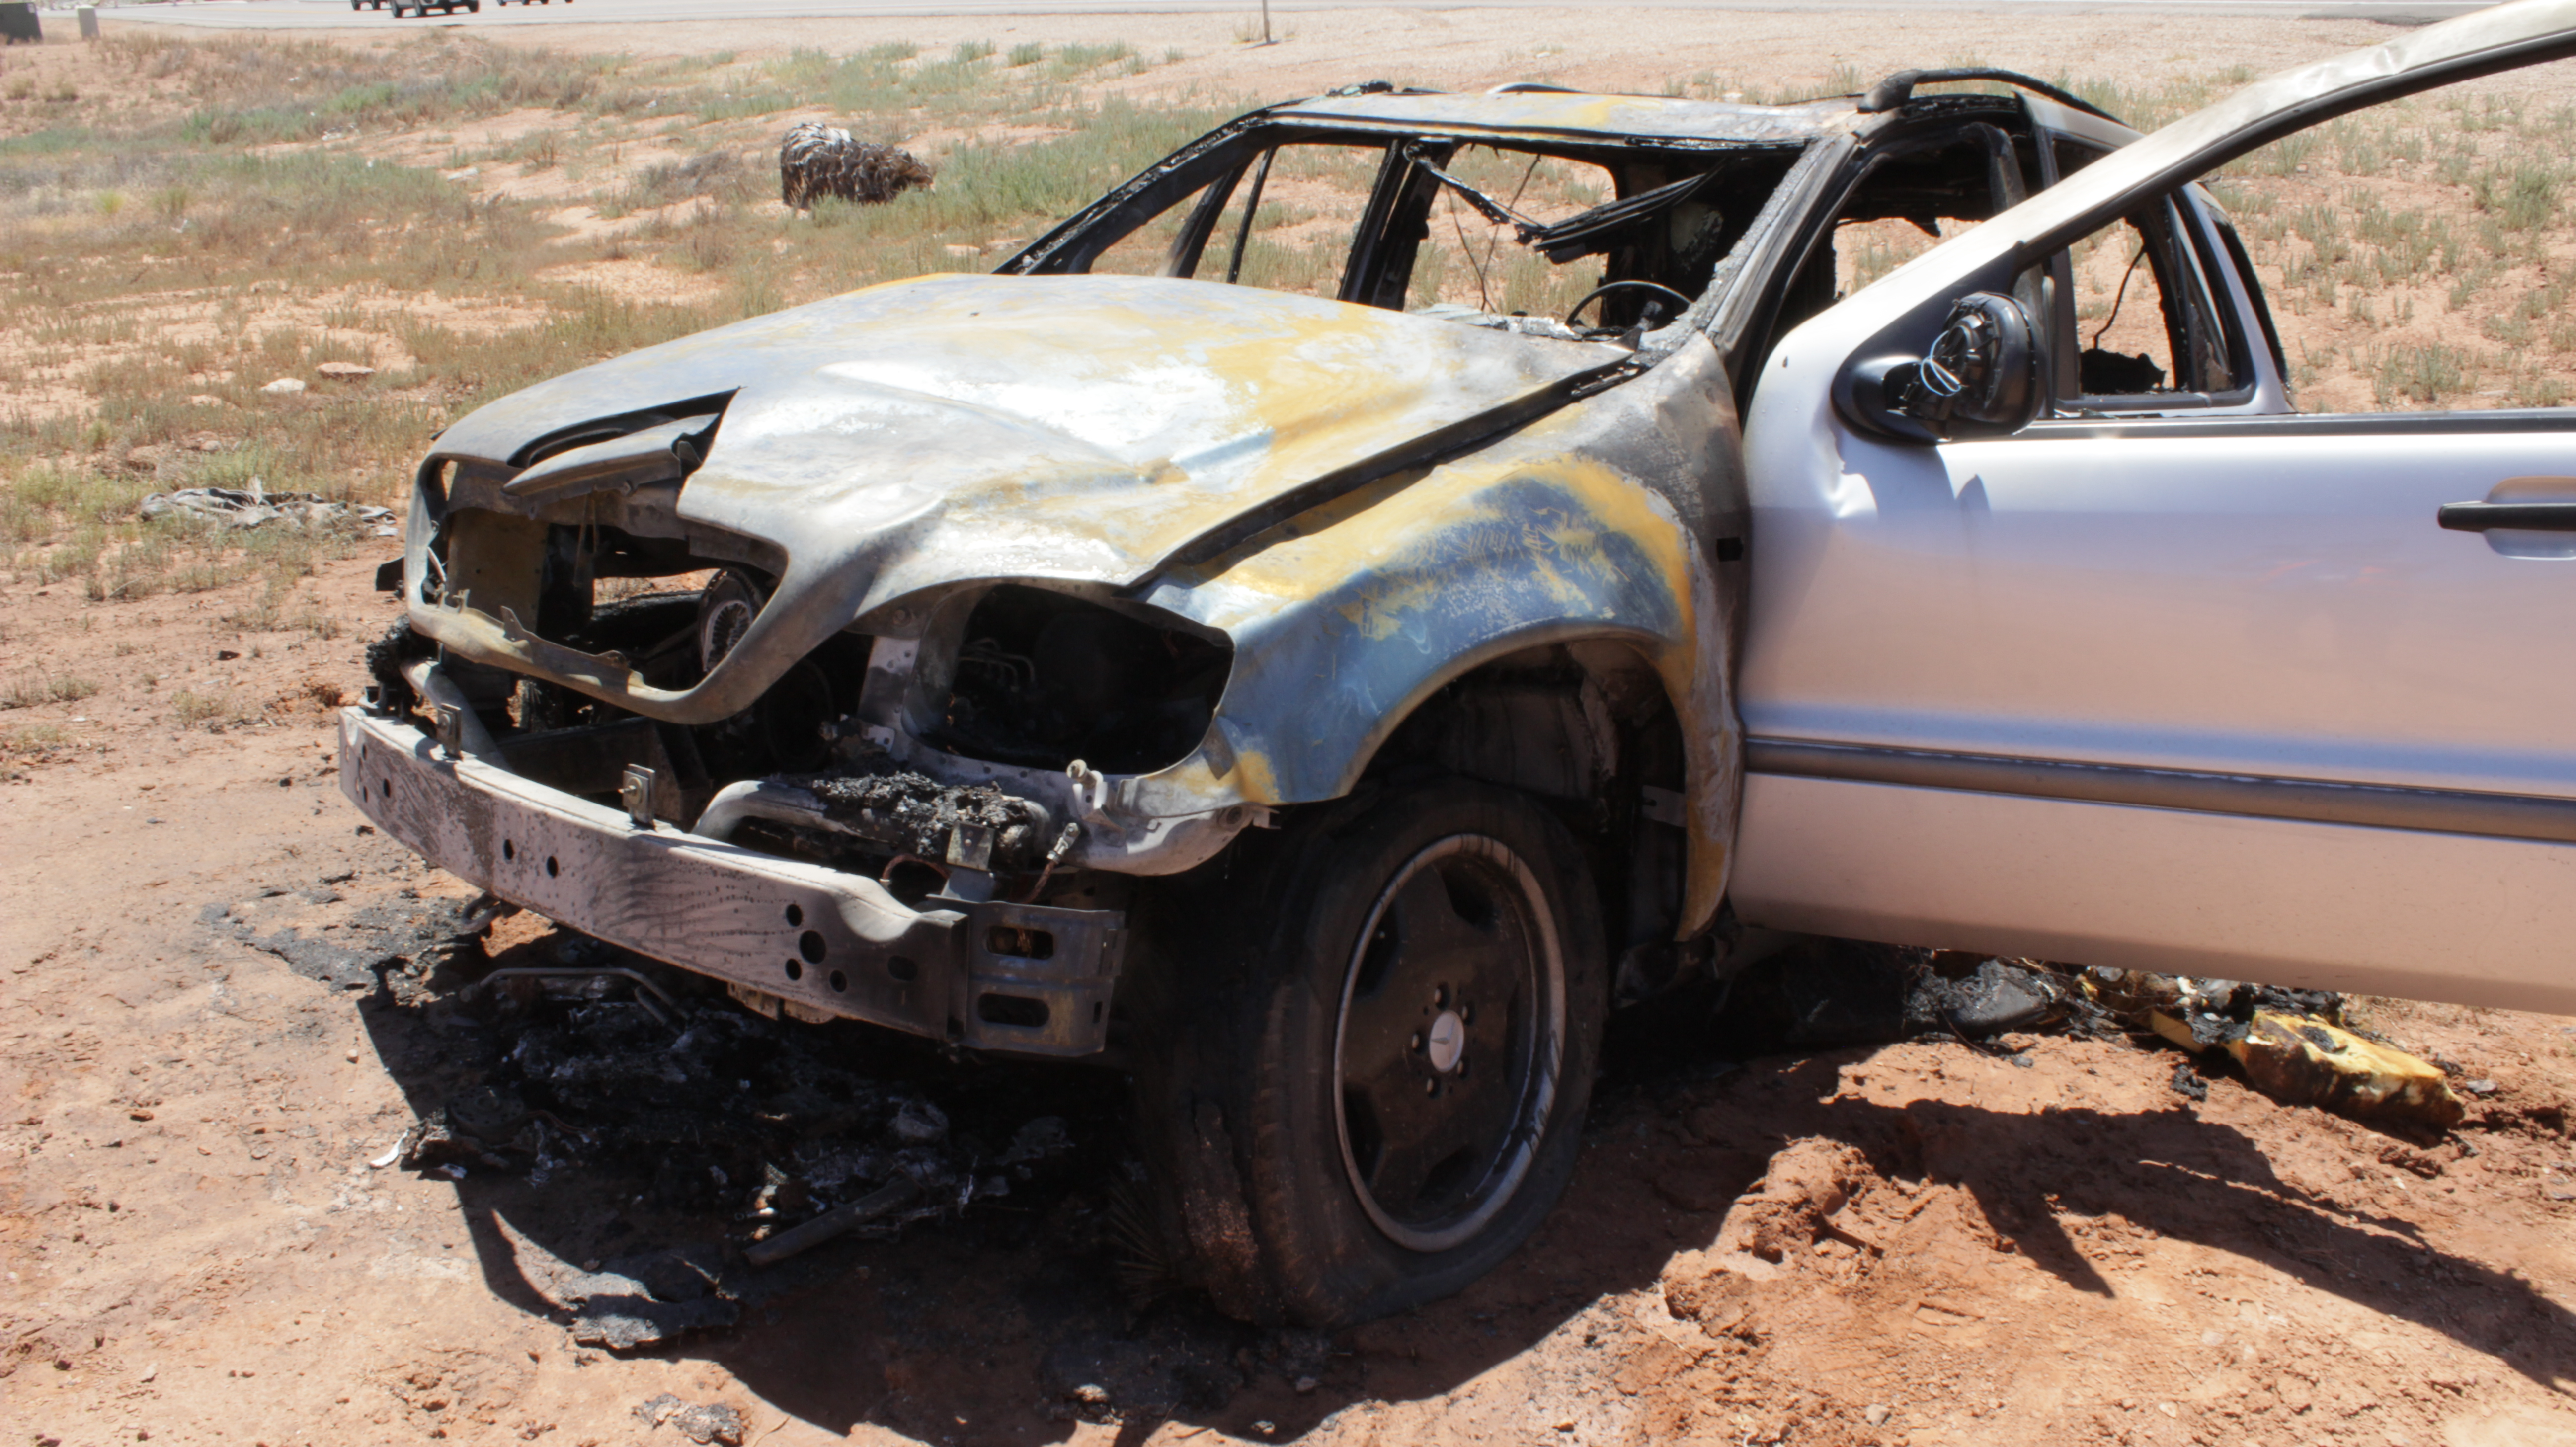 Out Of Control Driver Rolls Suv Vehicle Catches Fire St George News